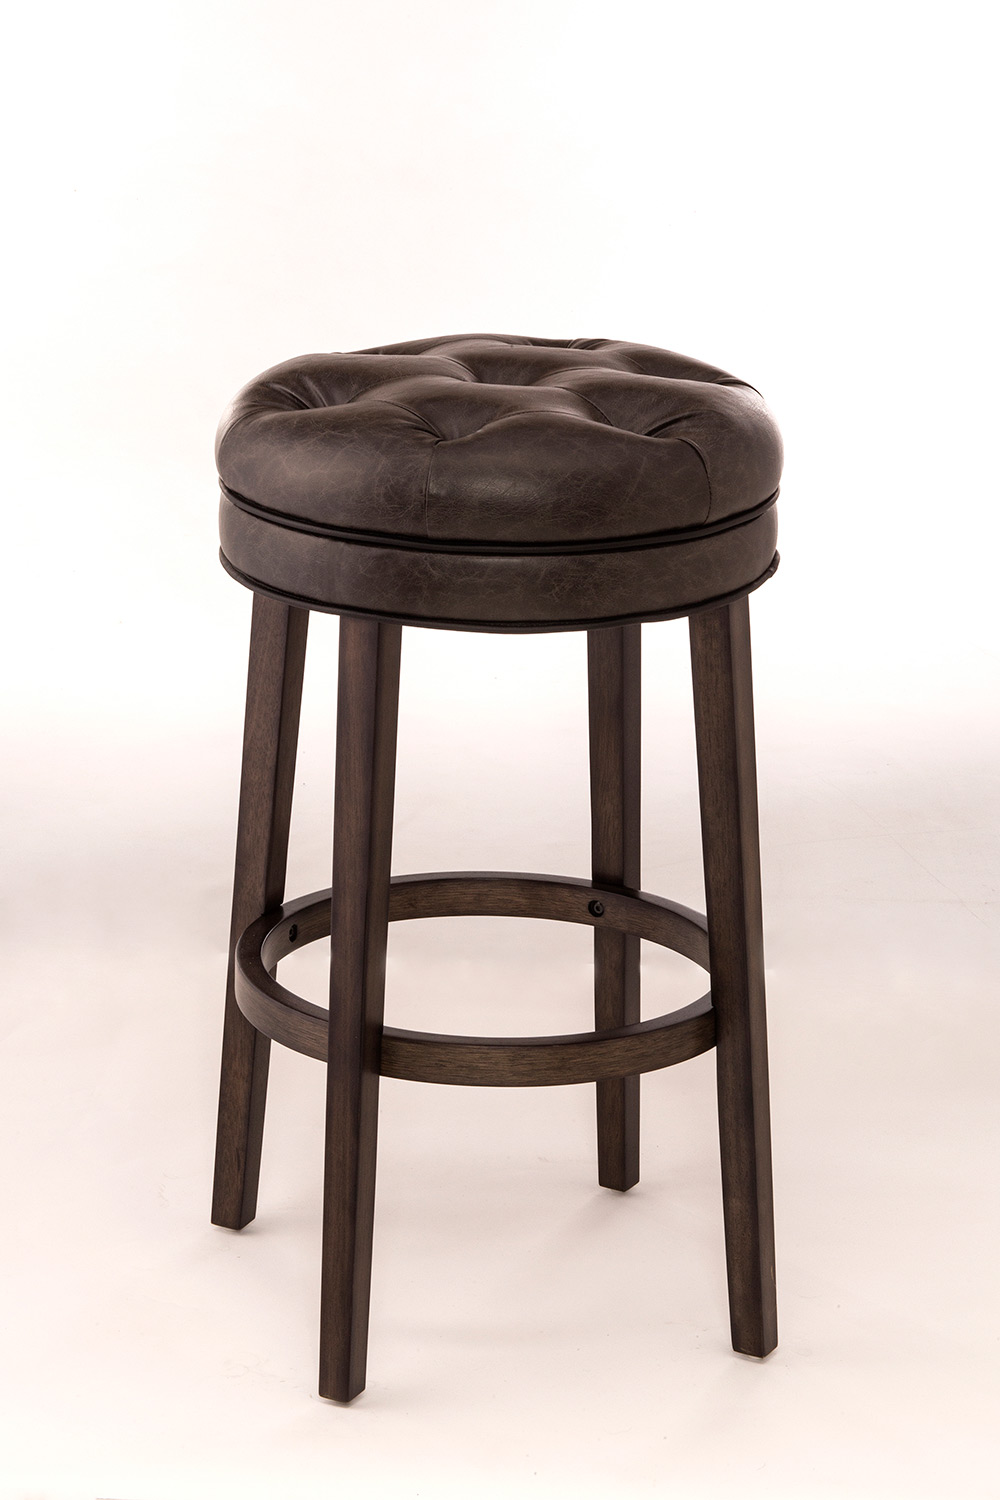 Hillsdale Krauss Backless Swivel Counter Stool - Gray Faux Leather